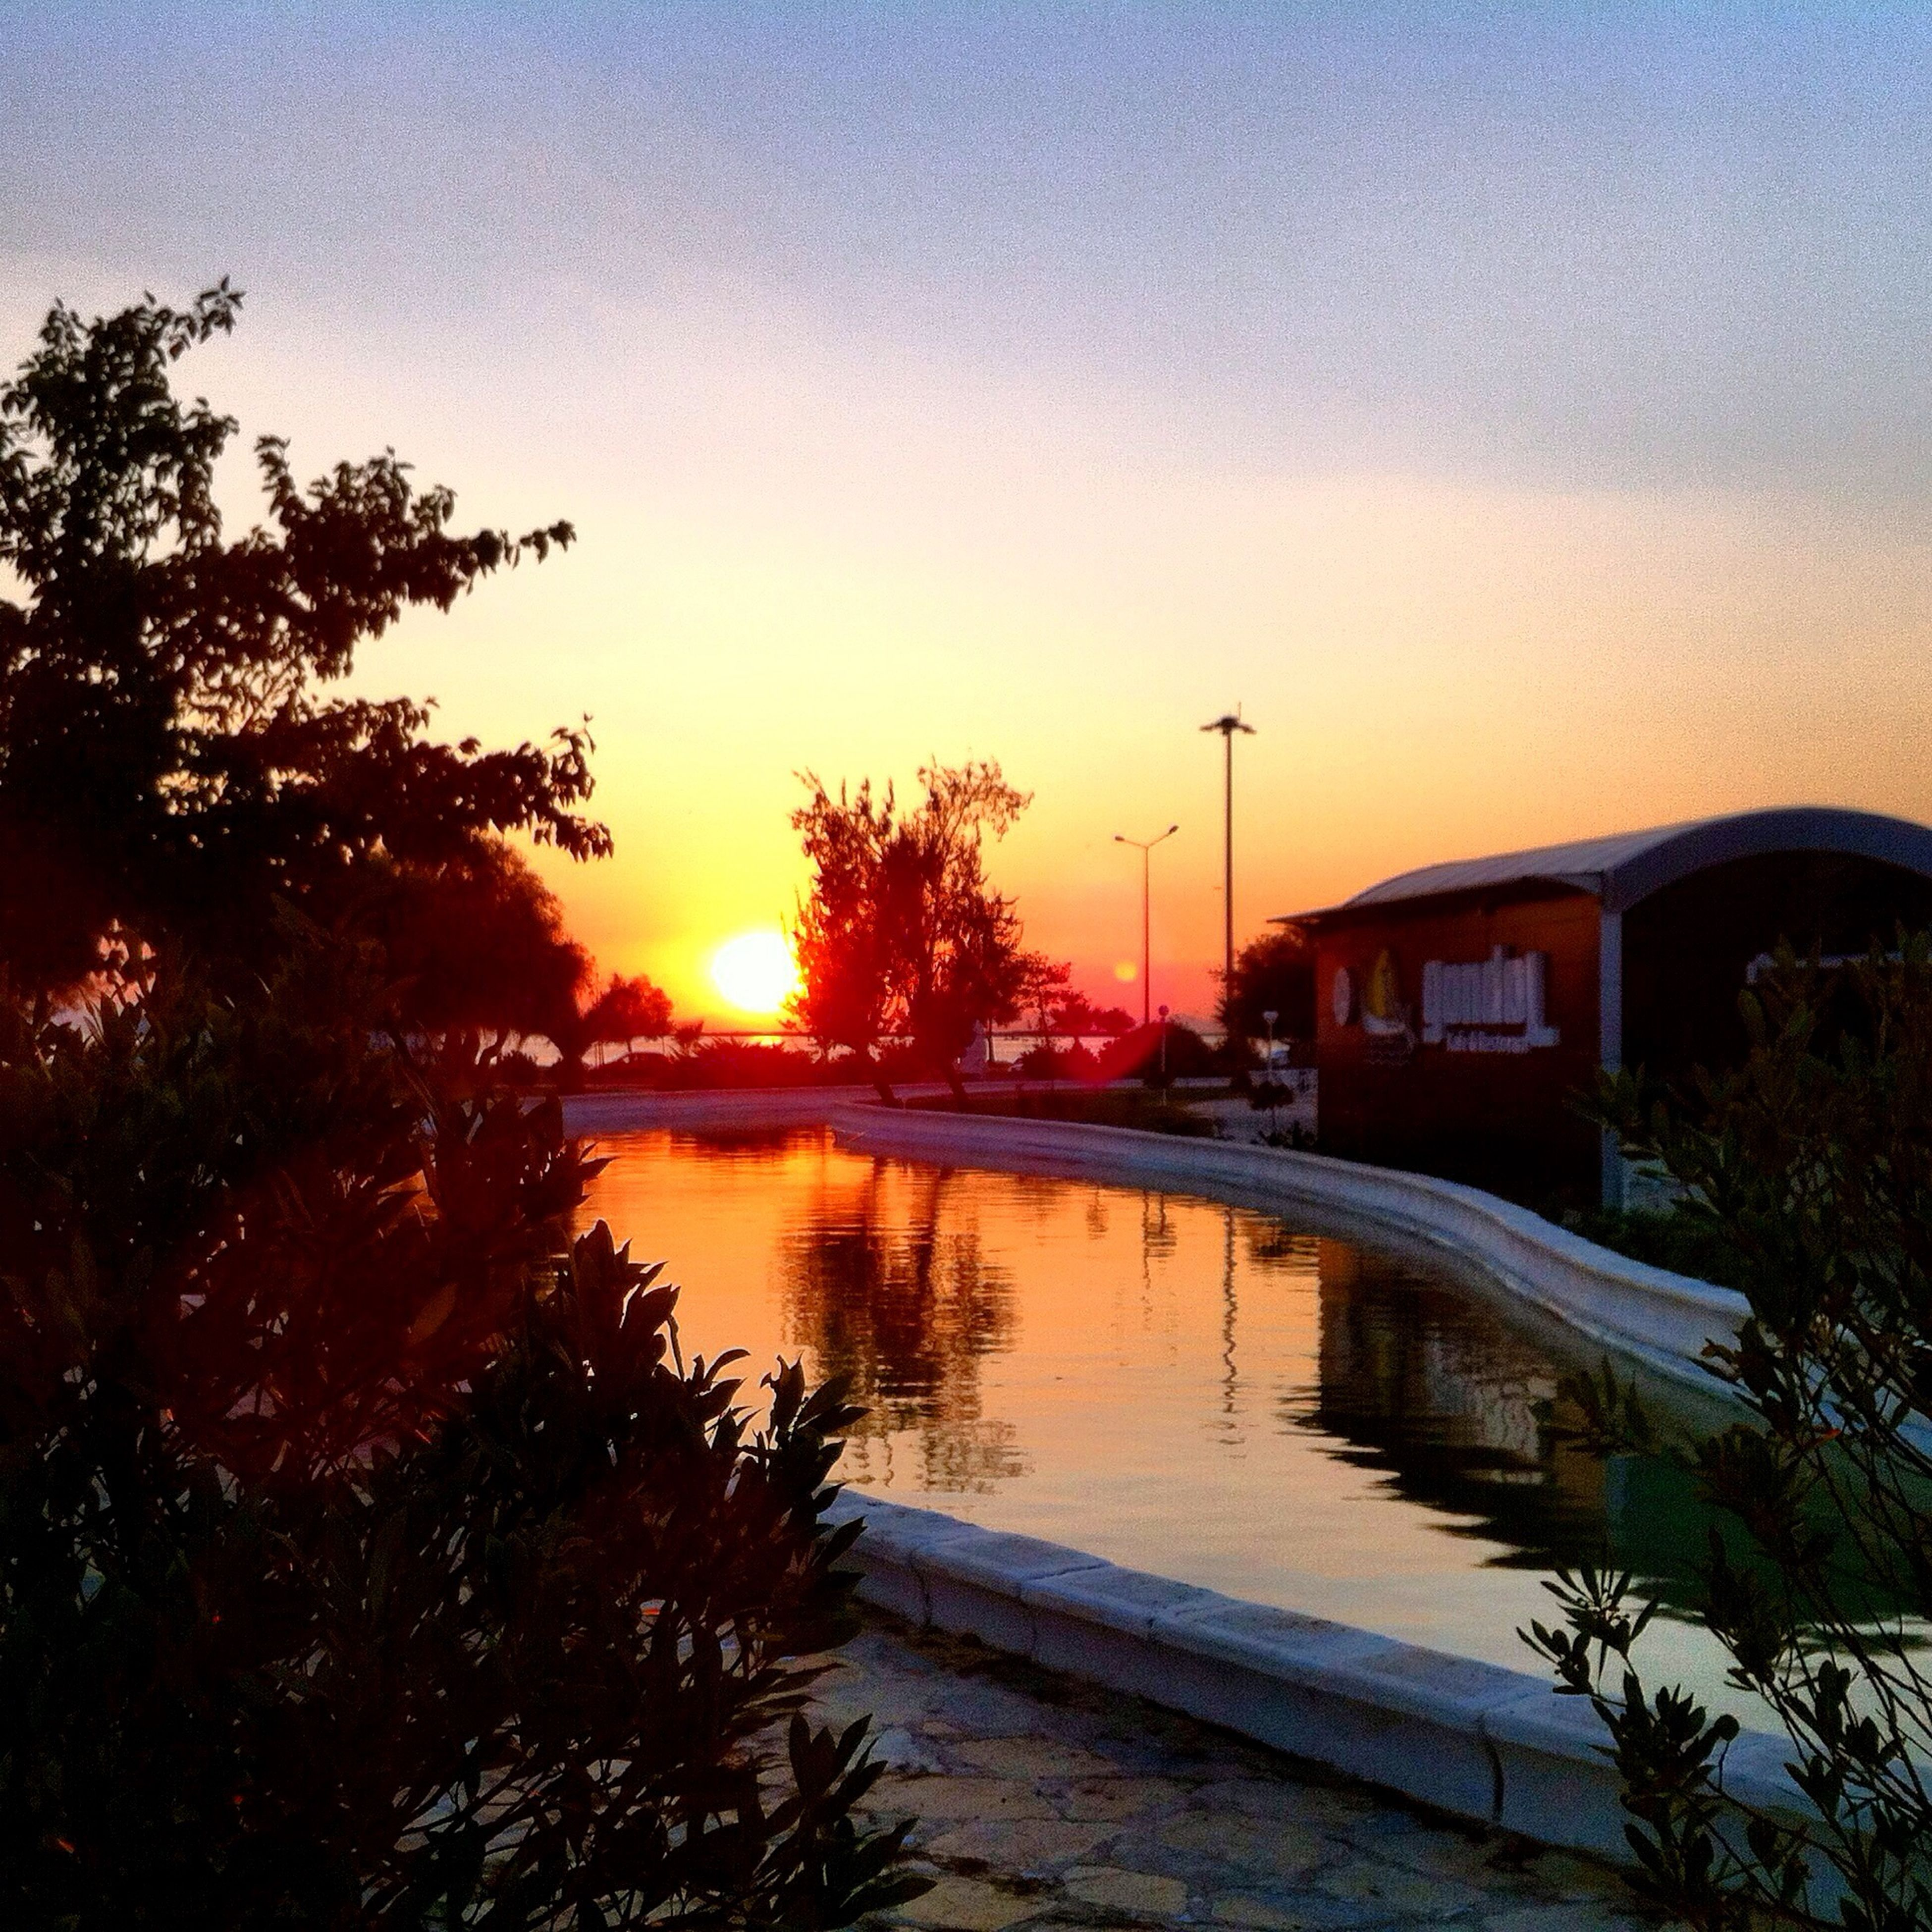 sunset, water, reflection, tree, orange color, sky, built structure, canal, transportation, river, tranquility, architecture, nature, beauty in nature, lake, clear sky, tranquil scene, building exterior, scenics, mode of transport